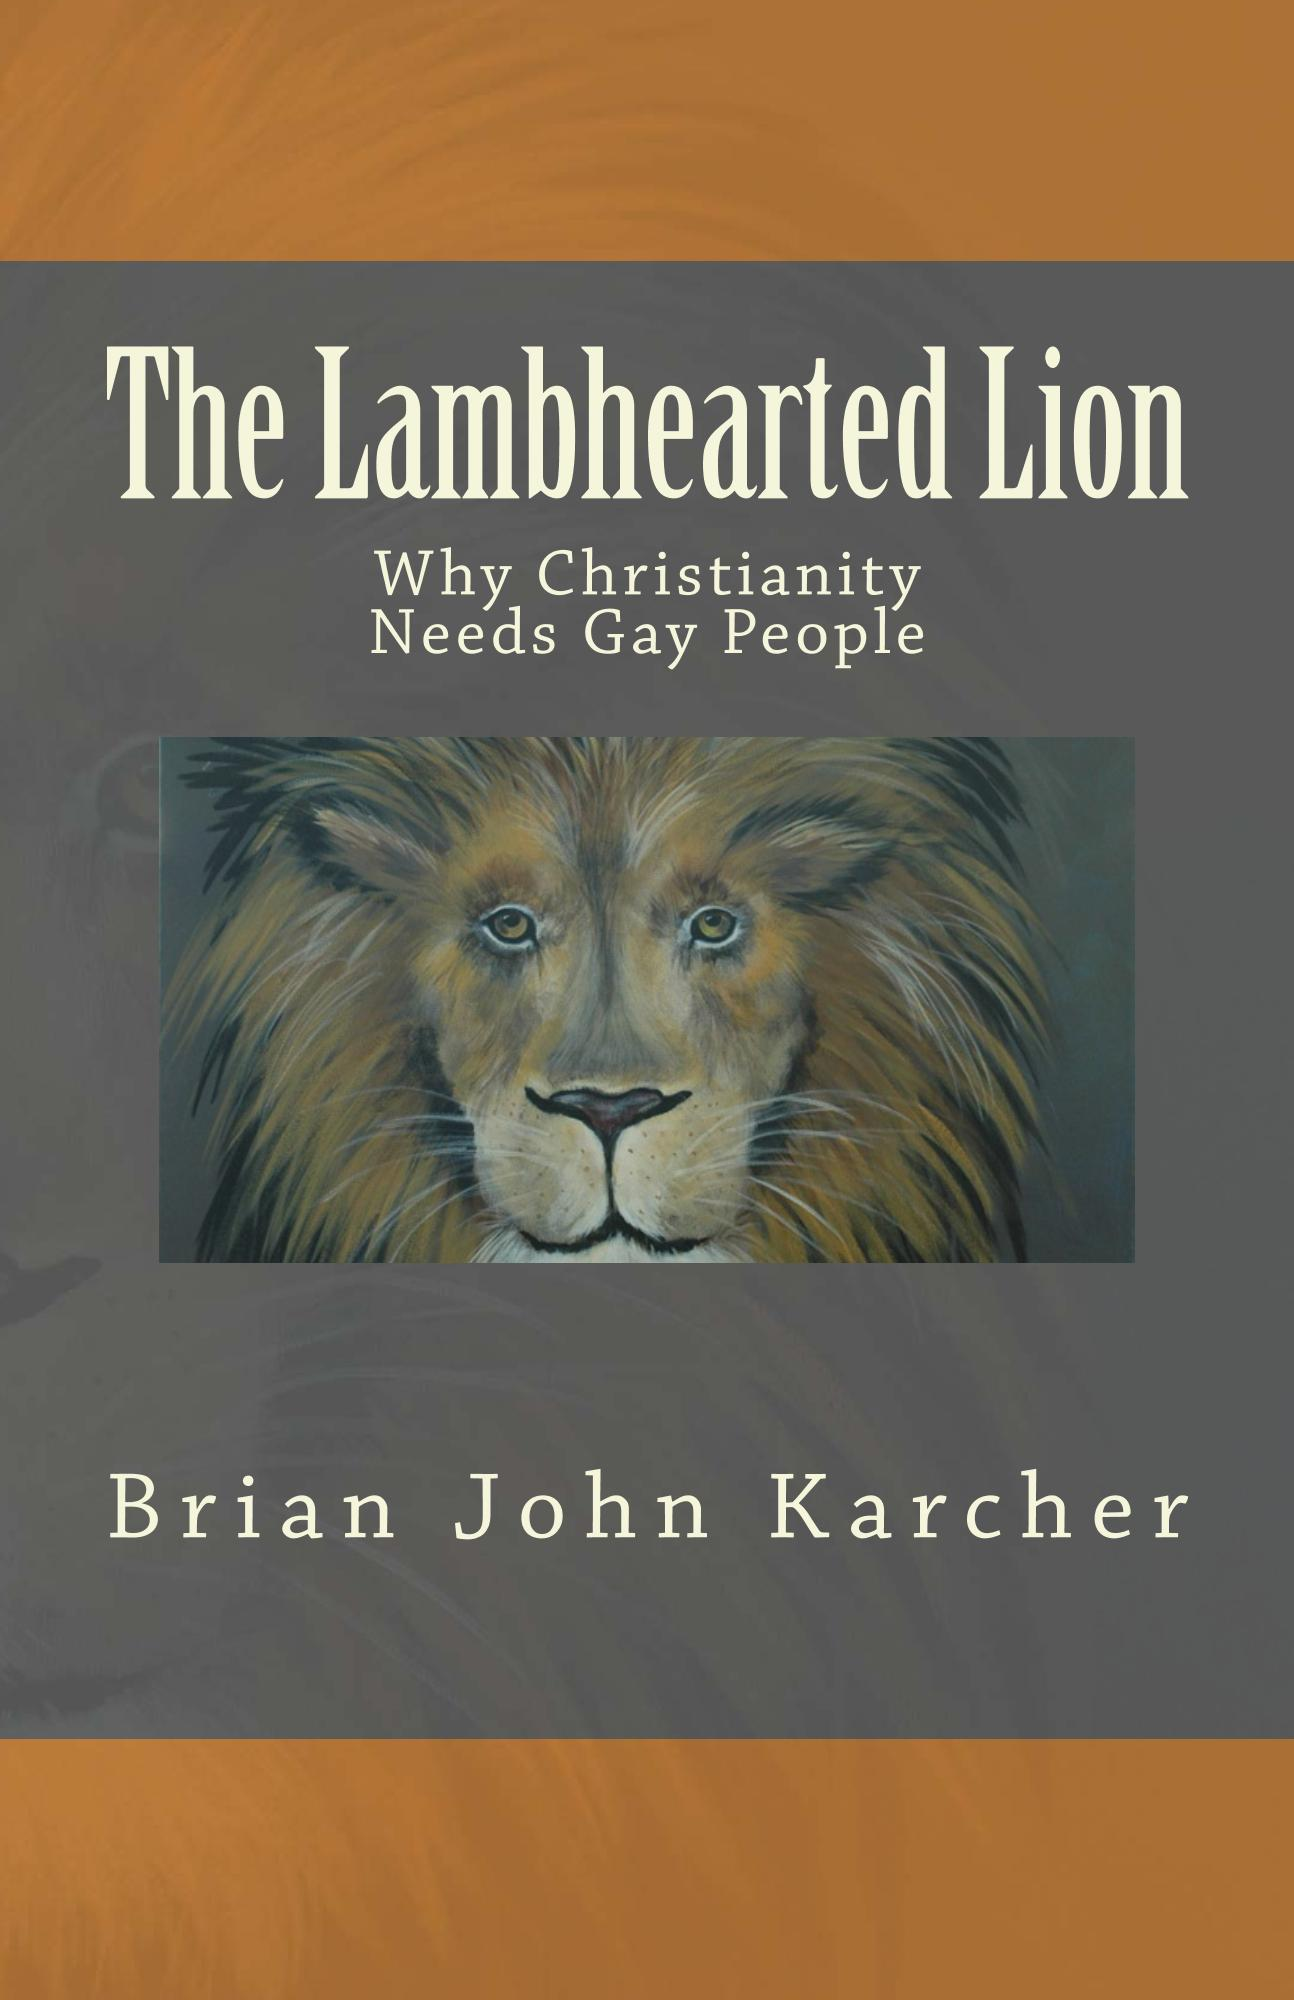 The Lambhearted Lion: Why Christianity Needs Gay People